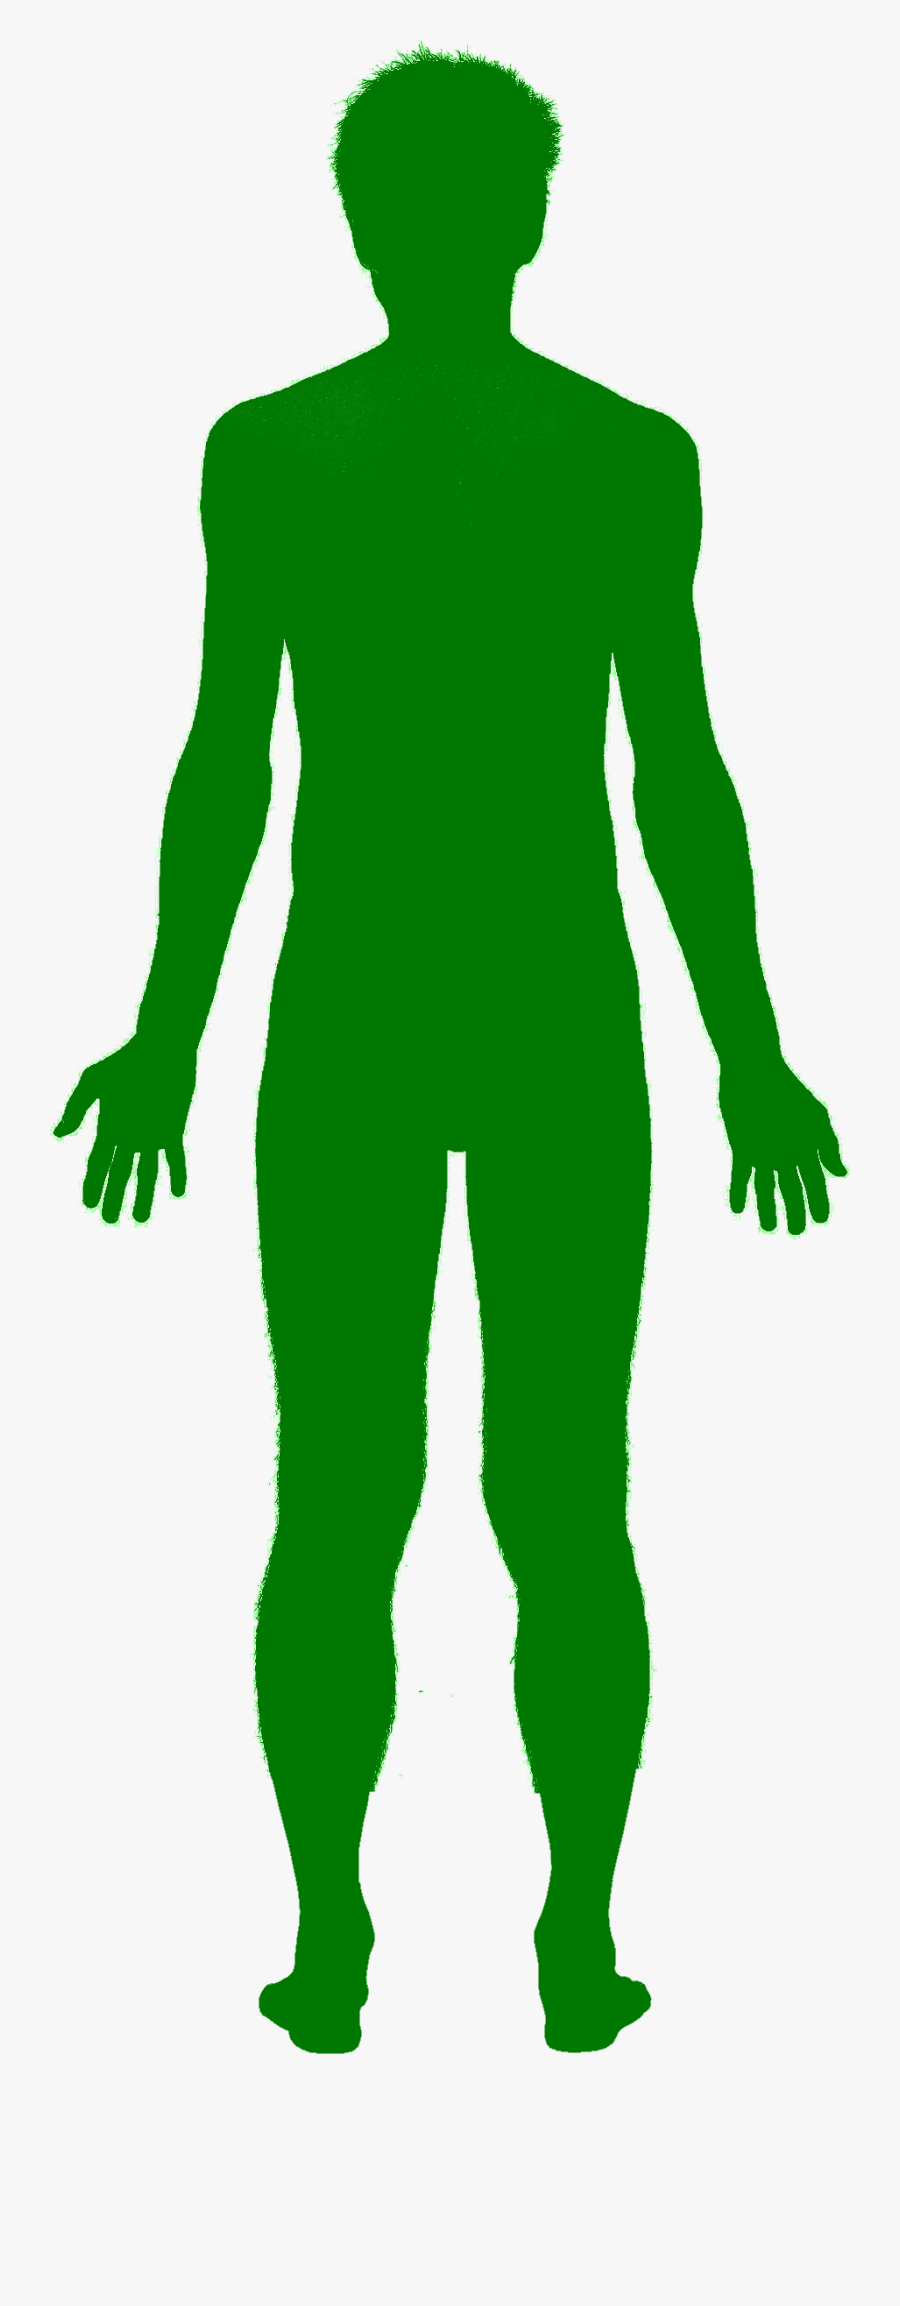 Person Clipart Silhouette No Background, Transparent PNG Clipart Images  Free Download - ClipartMax